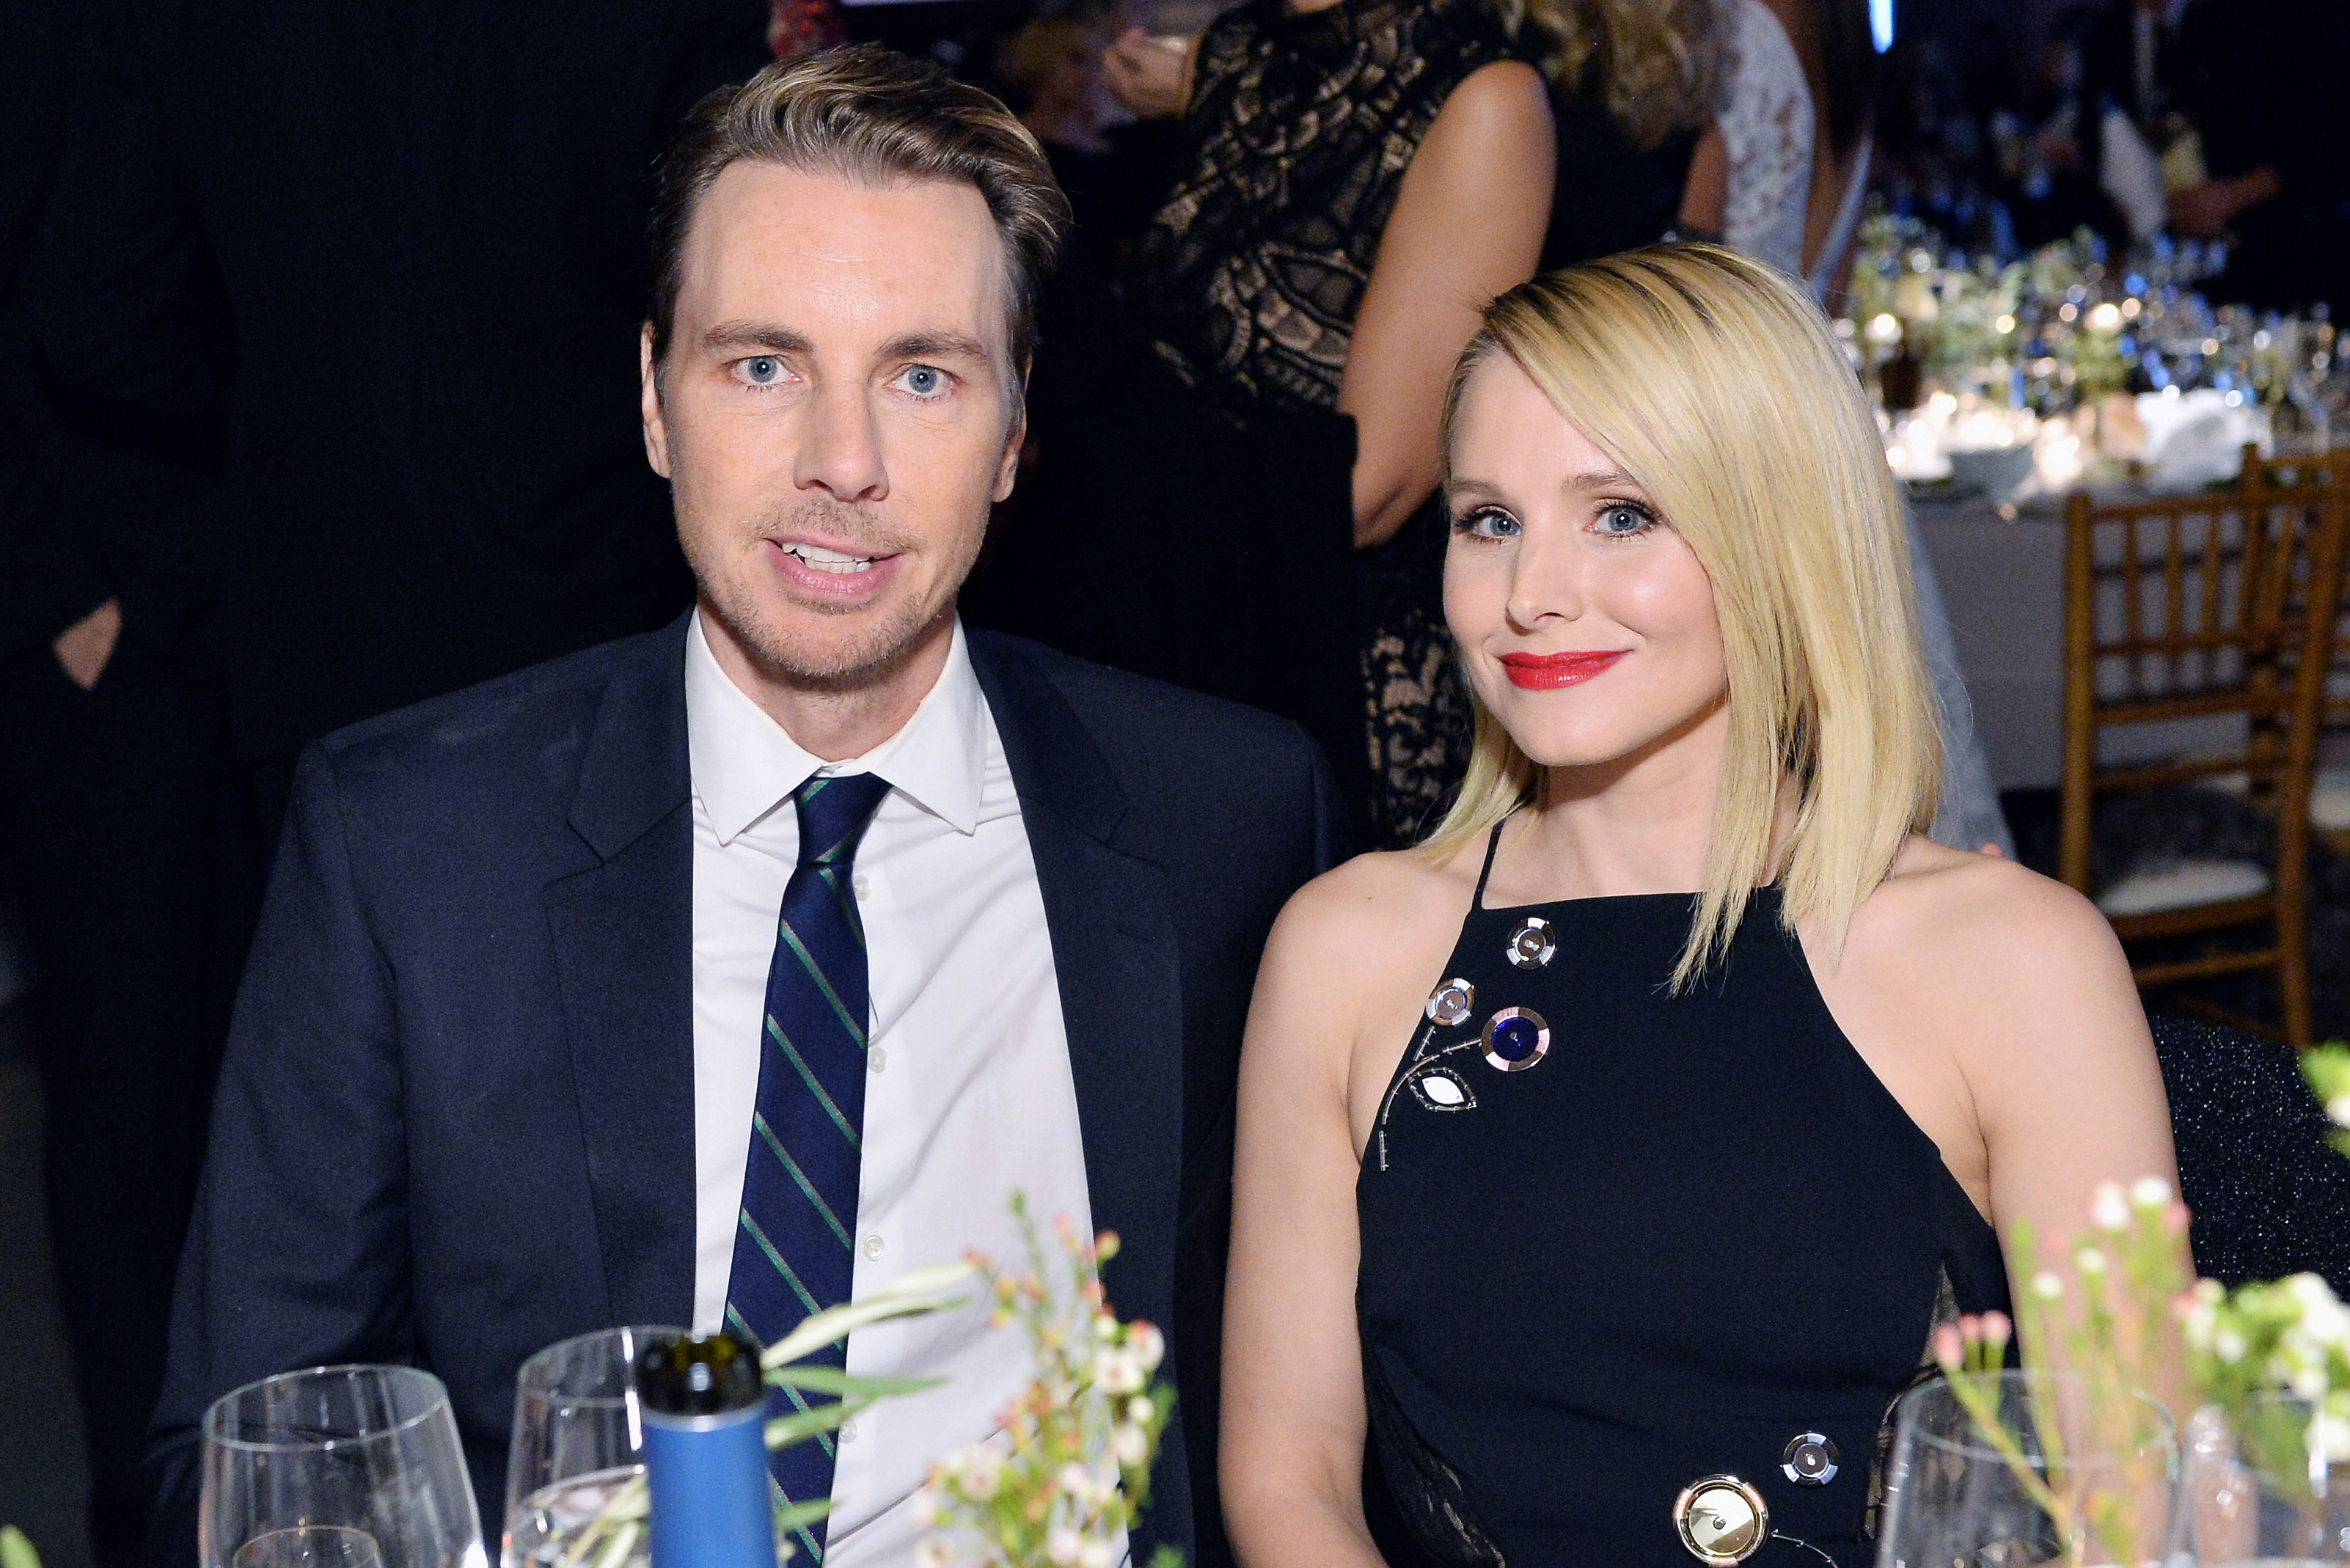 Dax Shepard/Kristen Bell Speak Out After News of Alleged Affair